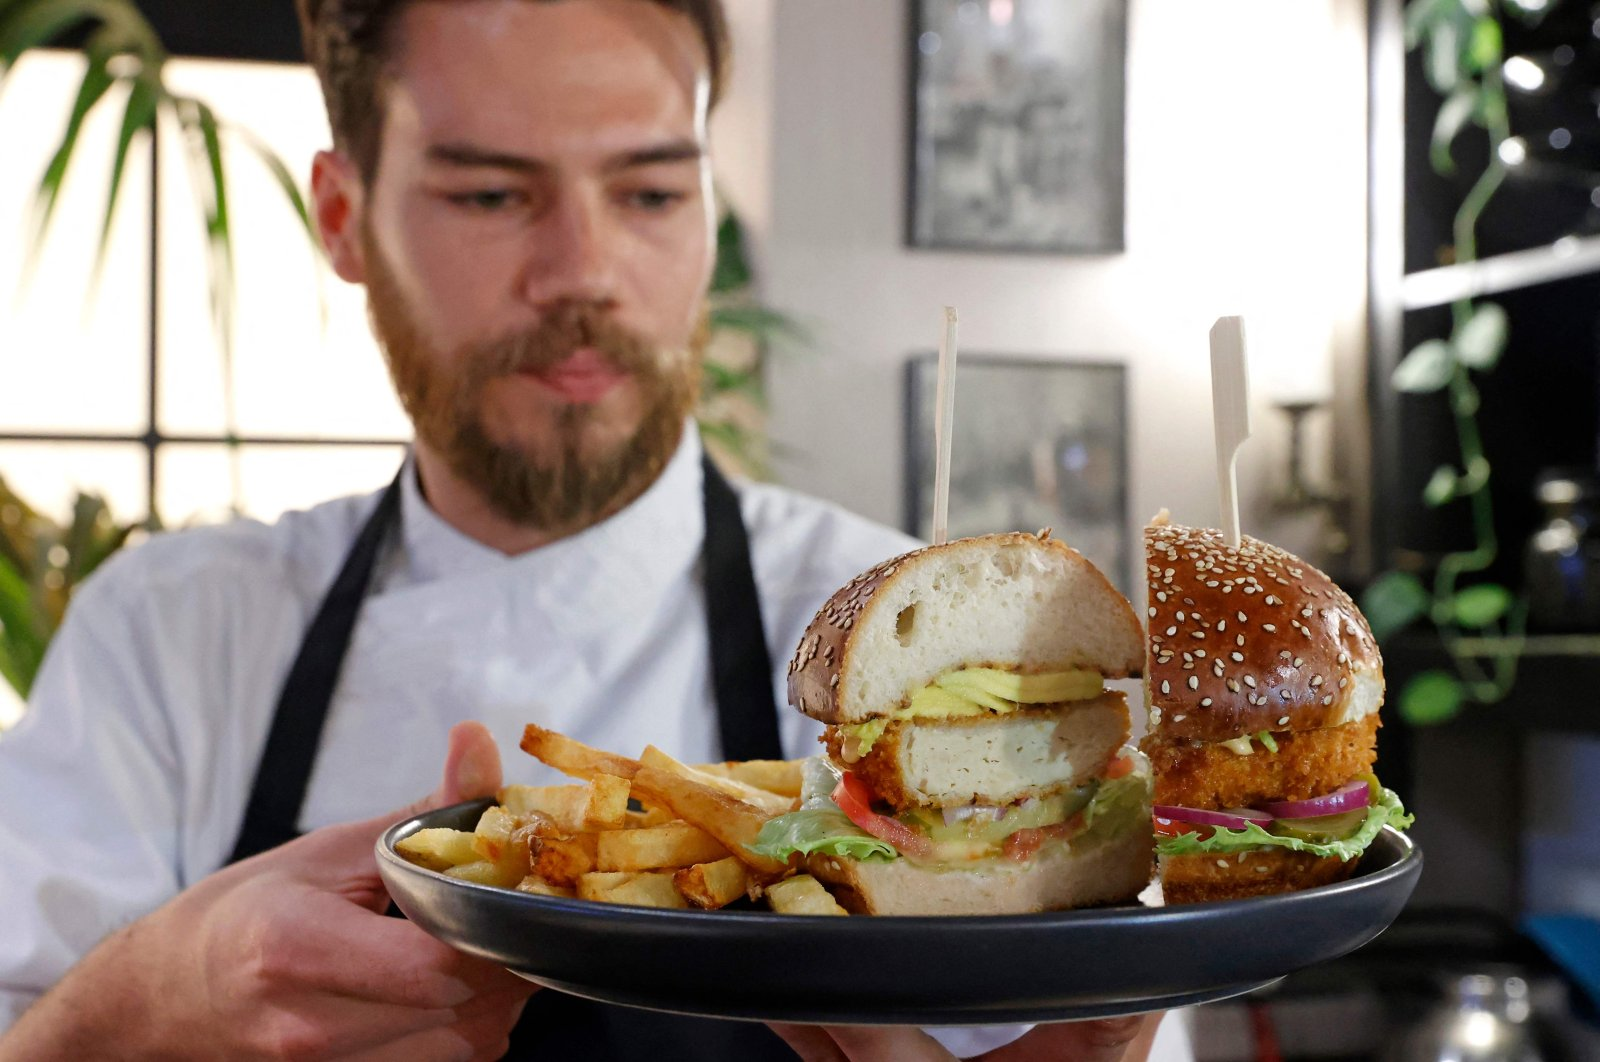 """Israeli Chef Shachar Yogev serves a burger made with """"cultured chicken"""" meat at a restaurant adjacent to the SuperMeat production site in Ness Ziona, central Israel, June 18, 2021. (AFP Photo)"""